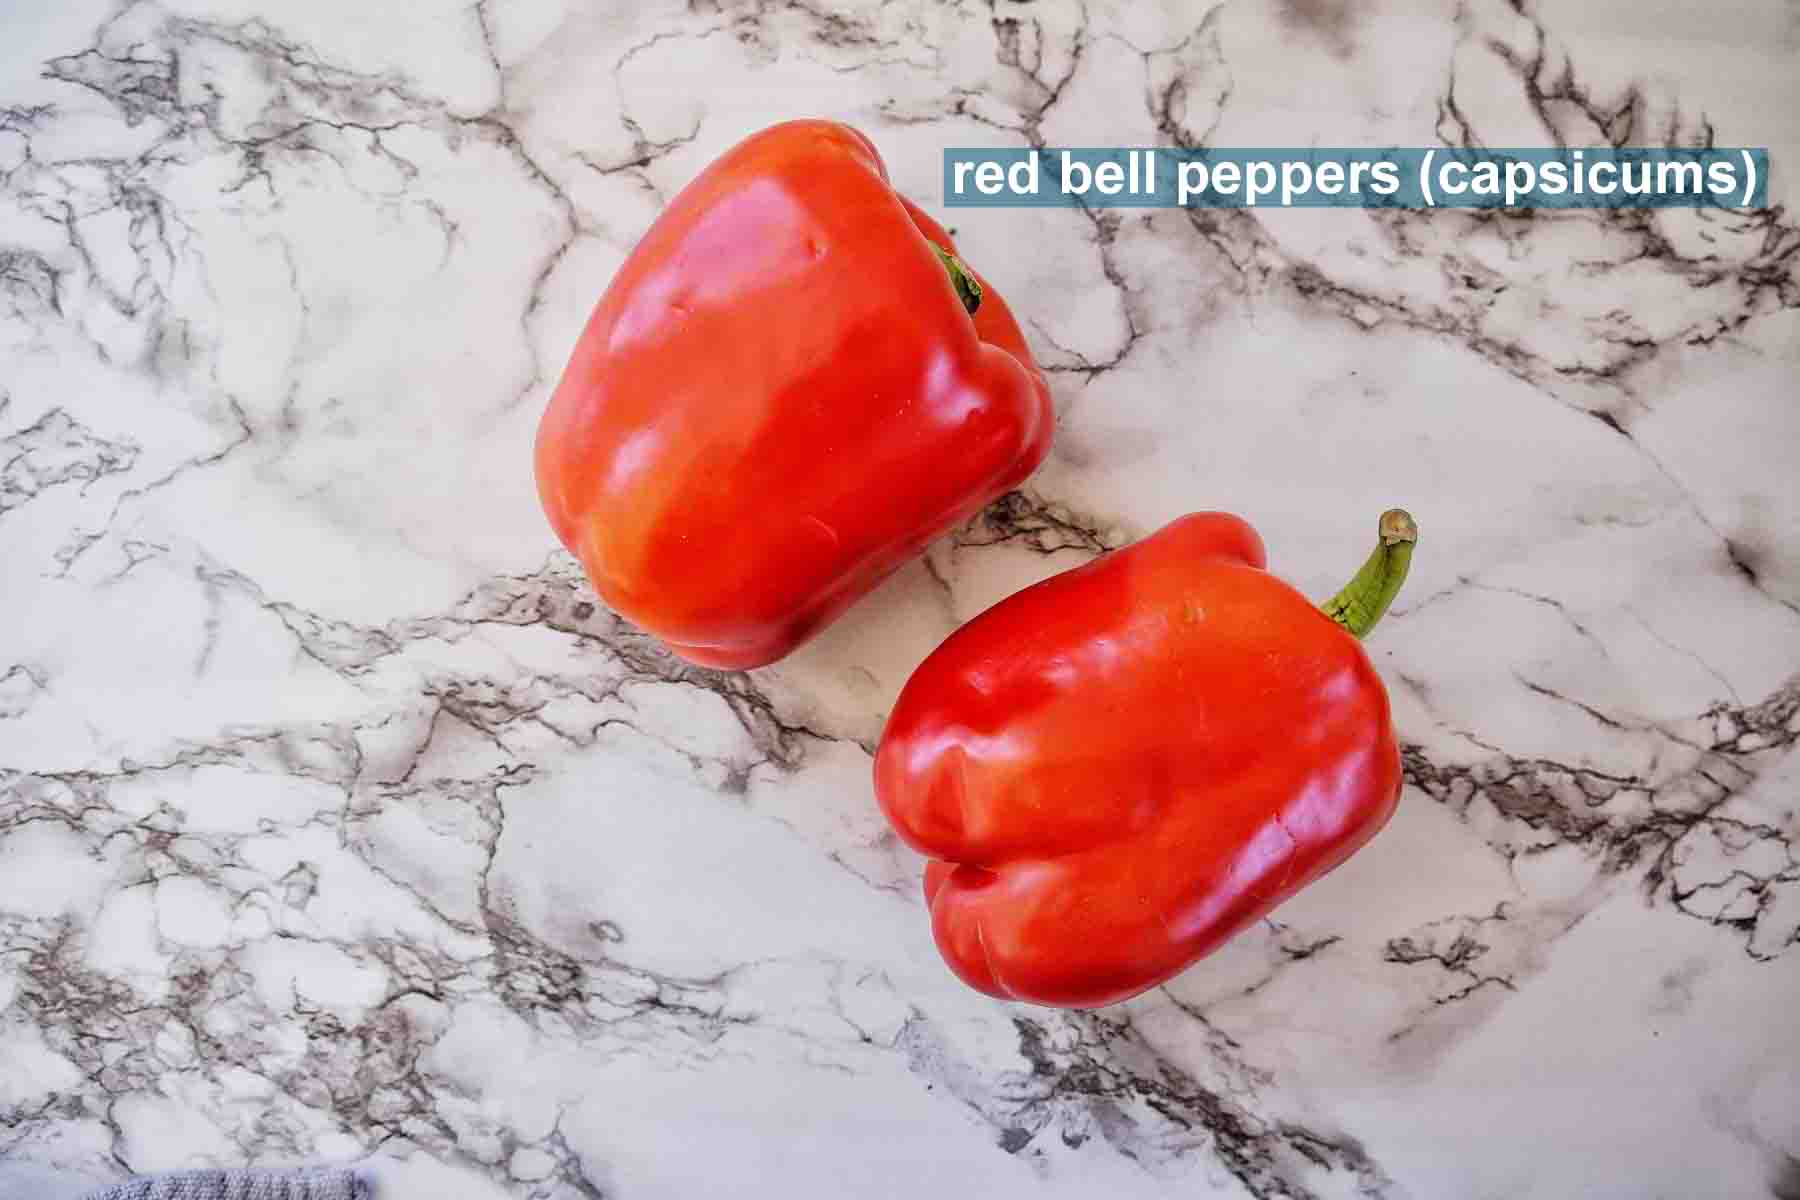 Air Fryer Roasted Red Pepper ingredients with text label